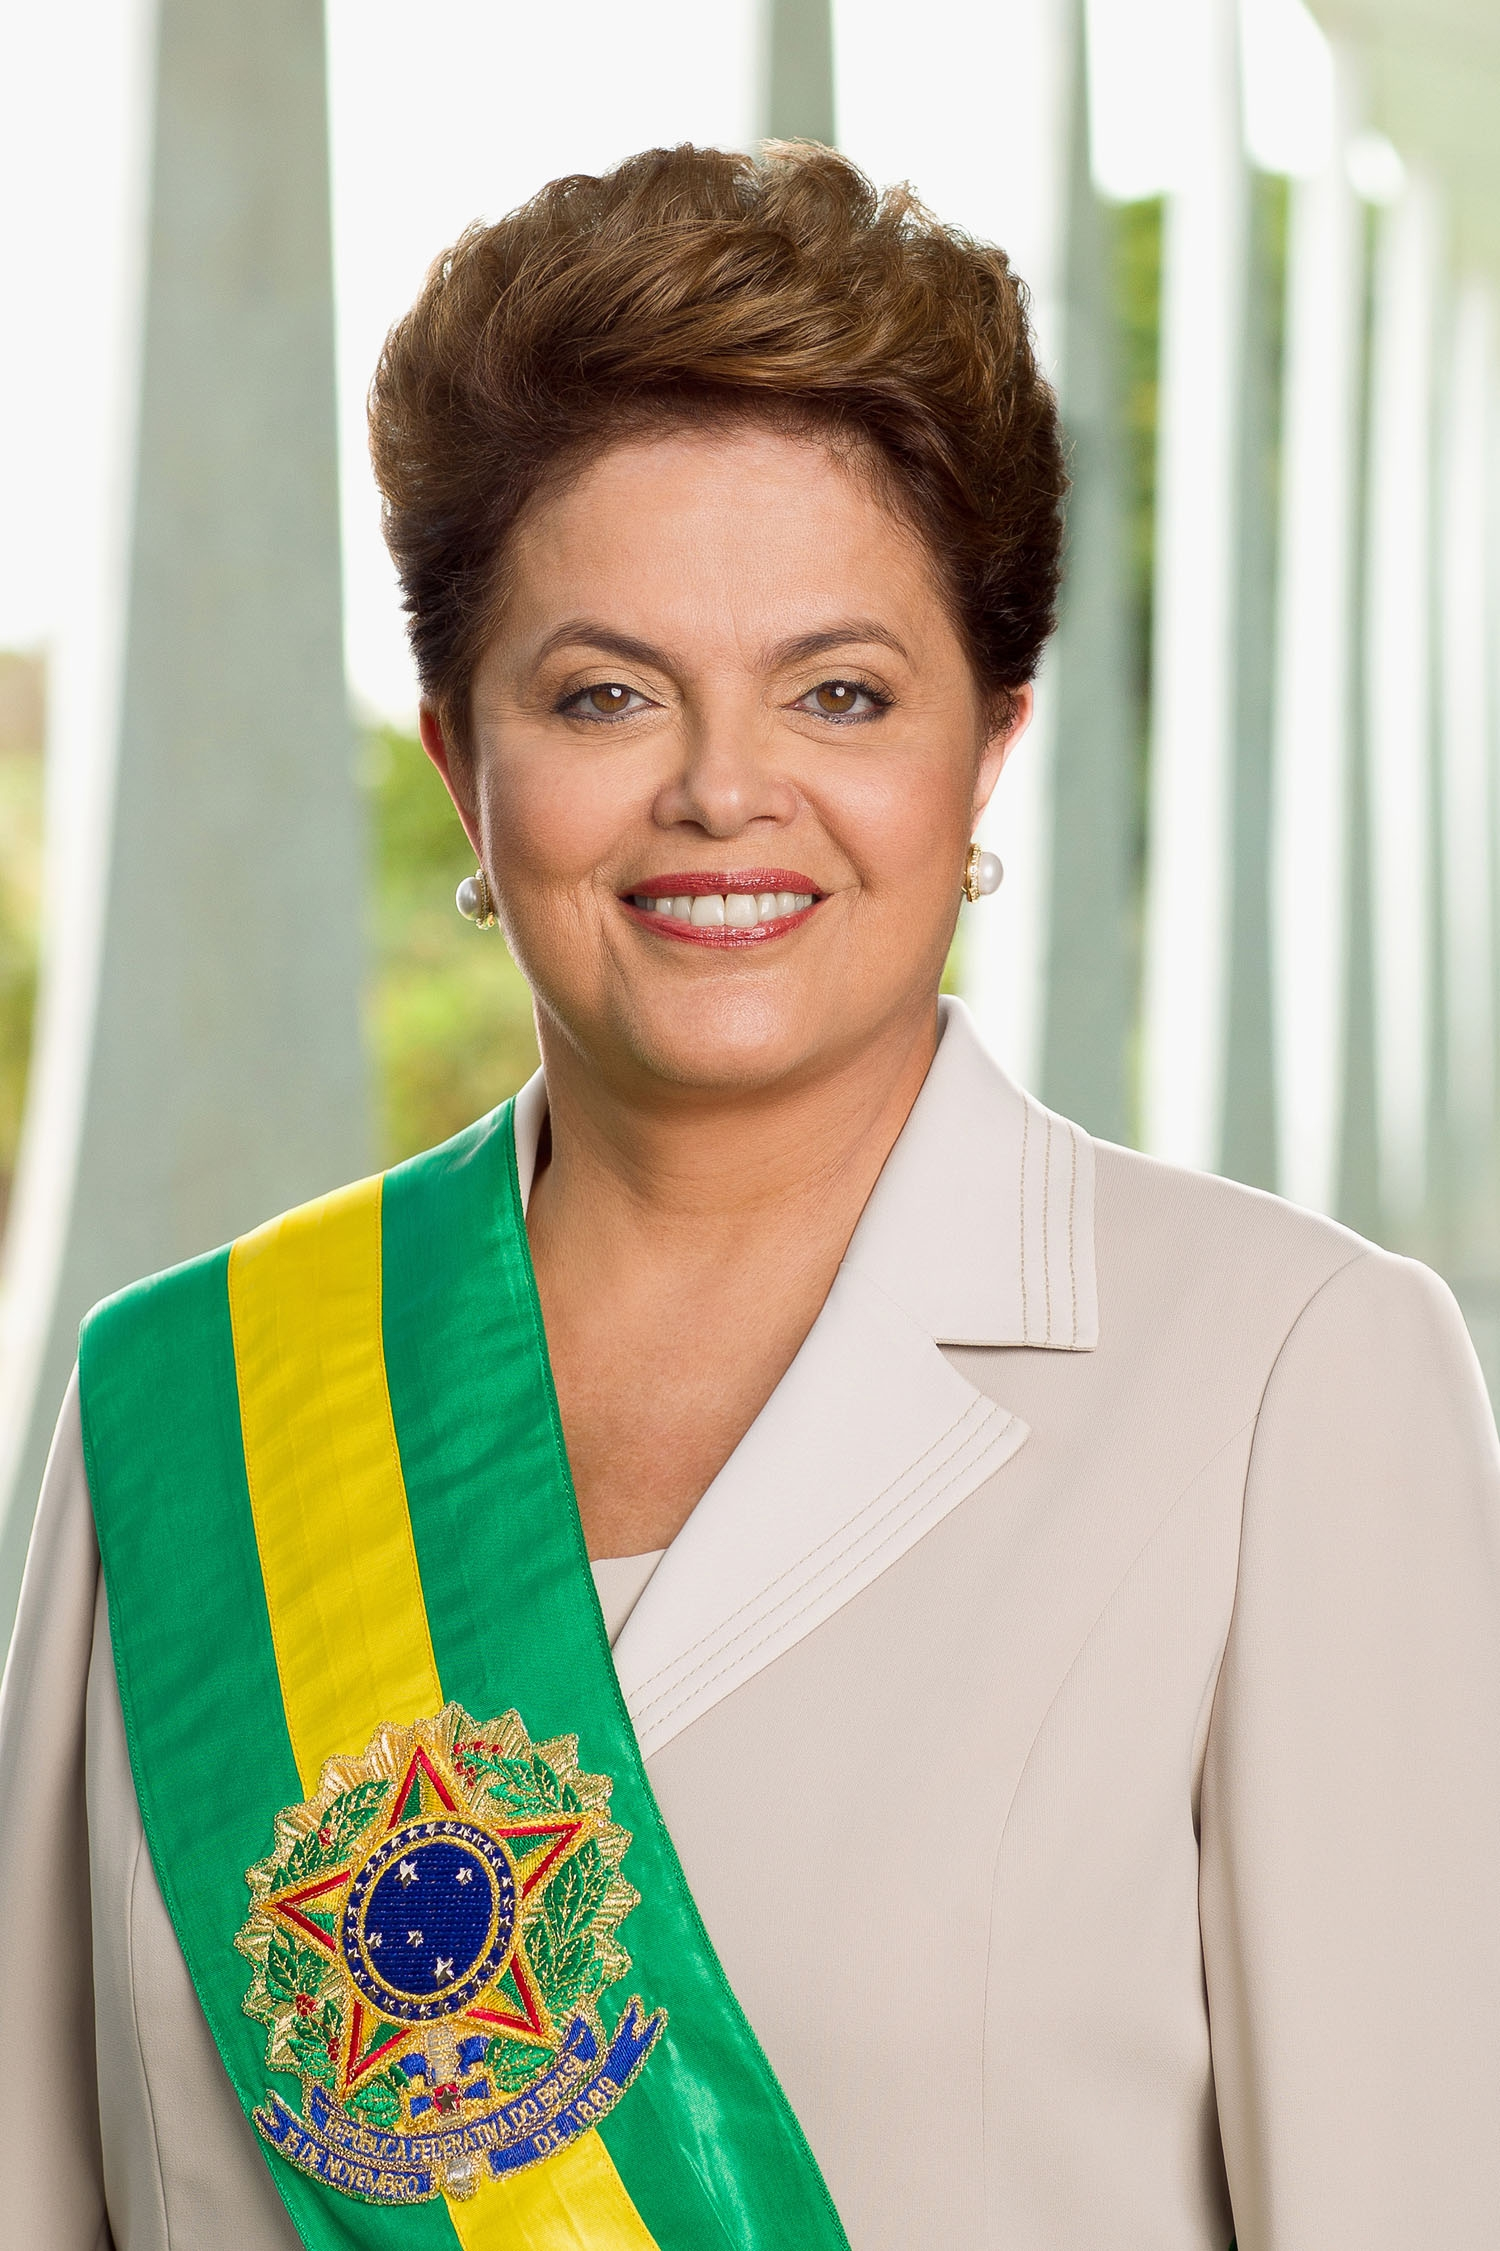 The official photograph of Brazilian President Dilma Rousseff in Brasilia on January 9, 2011